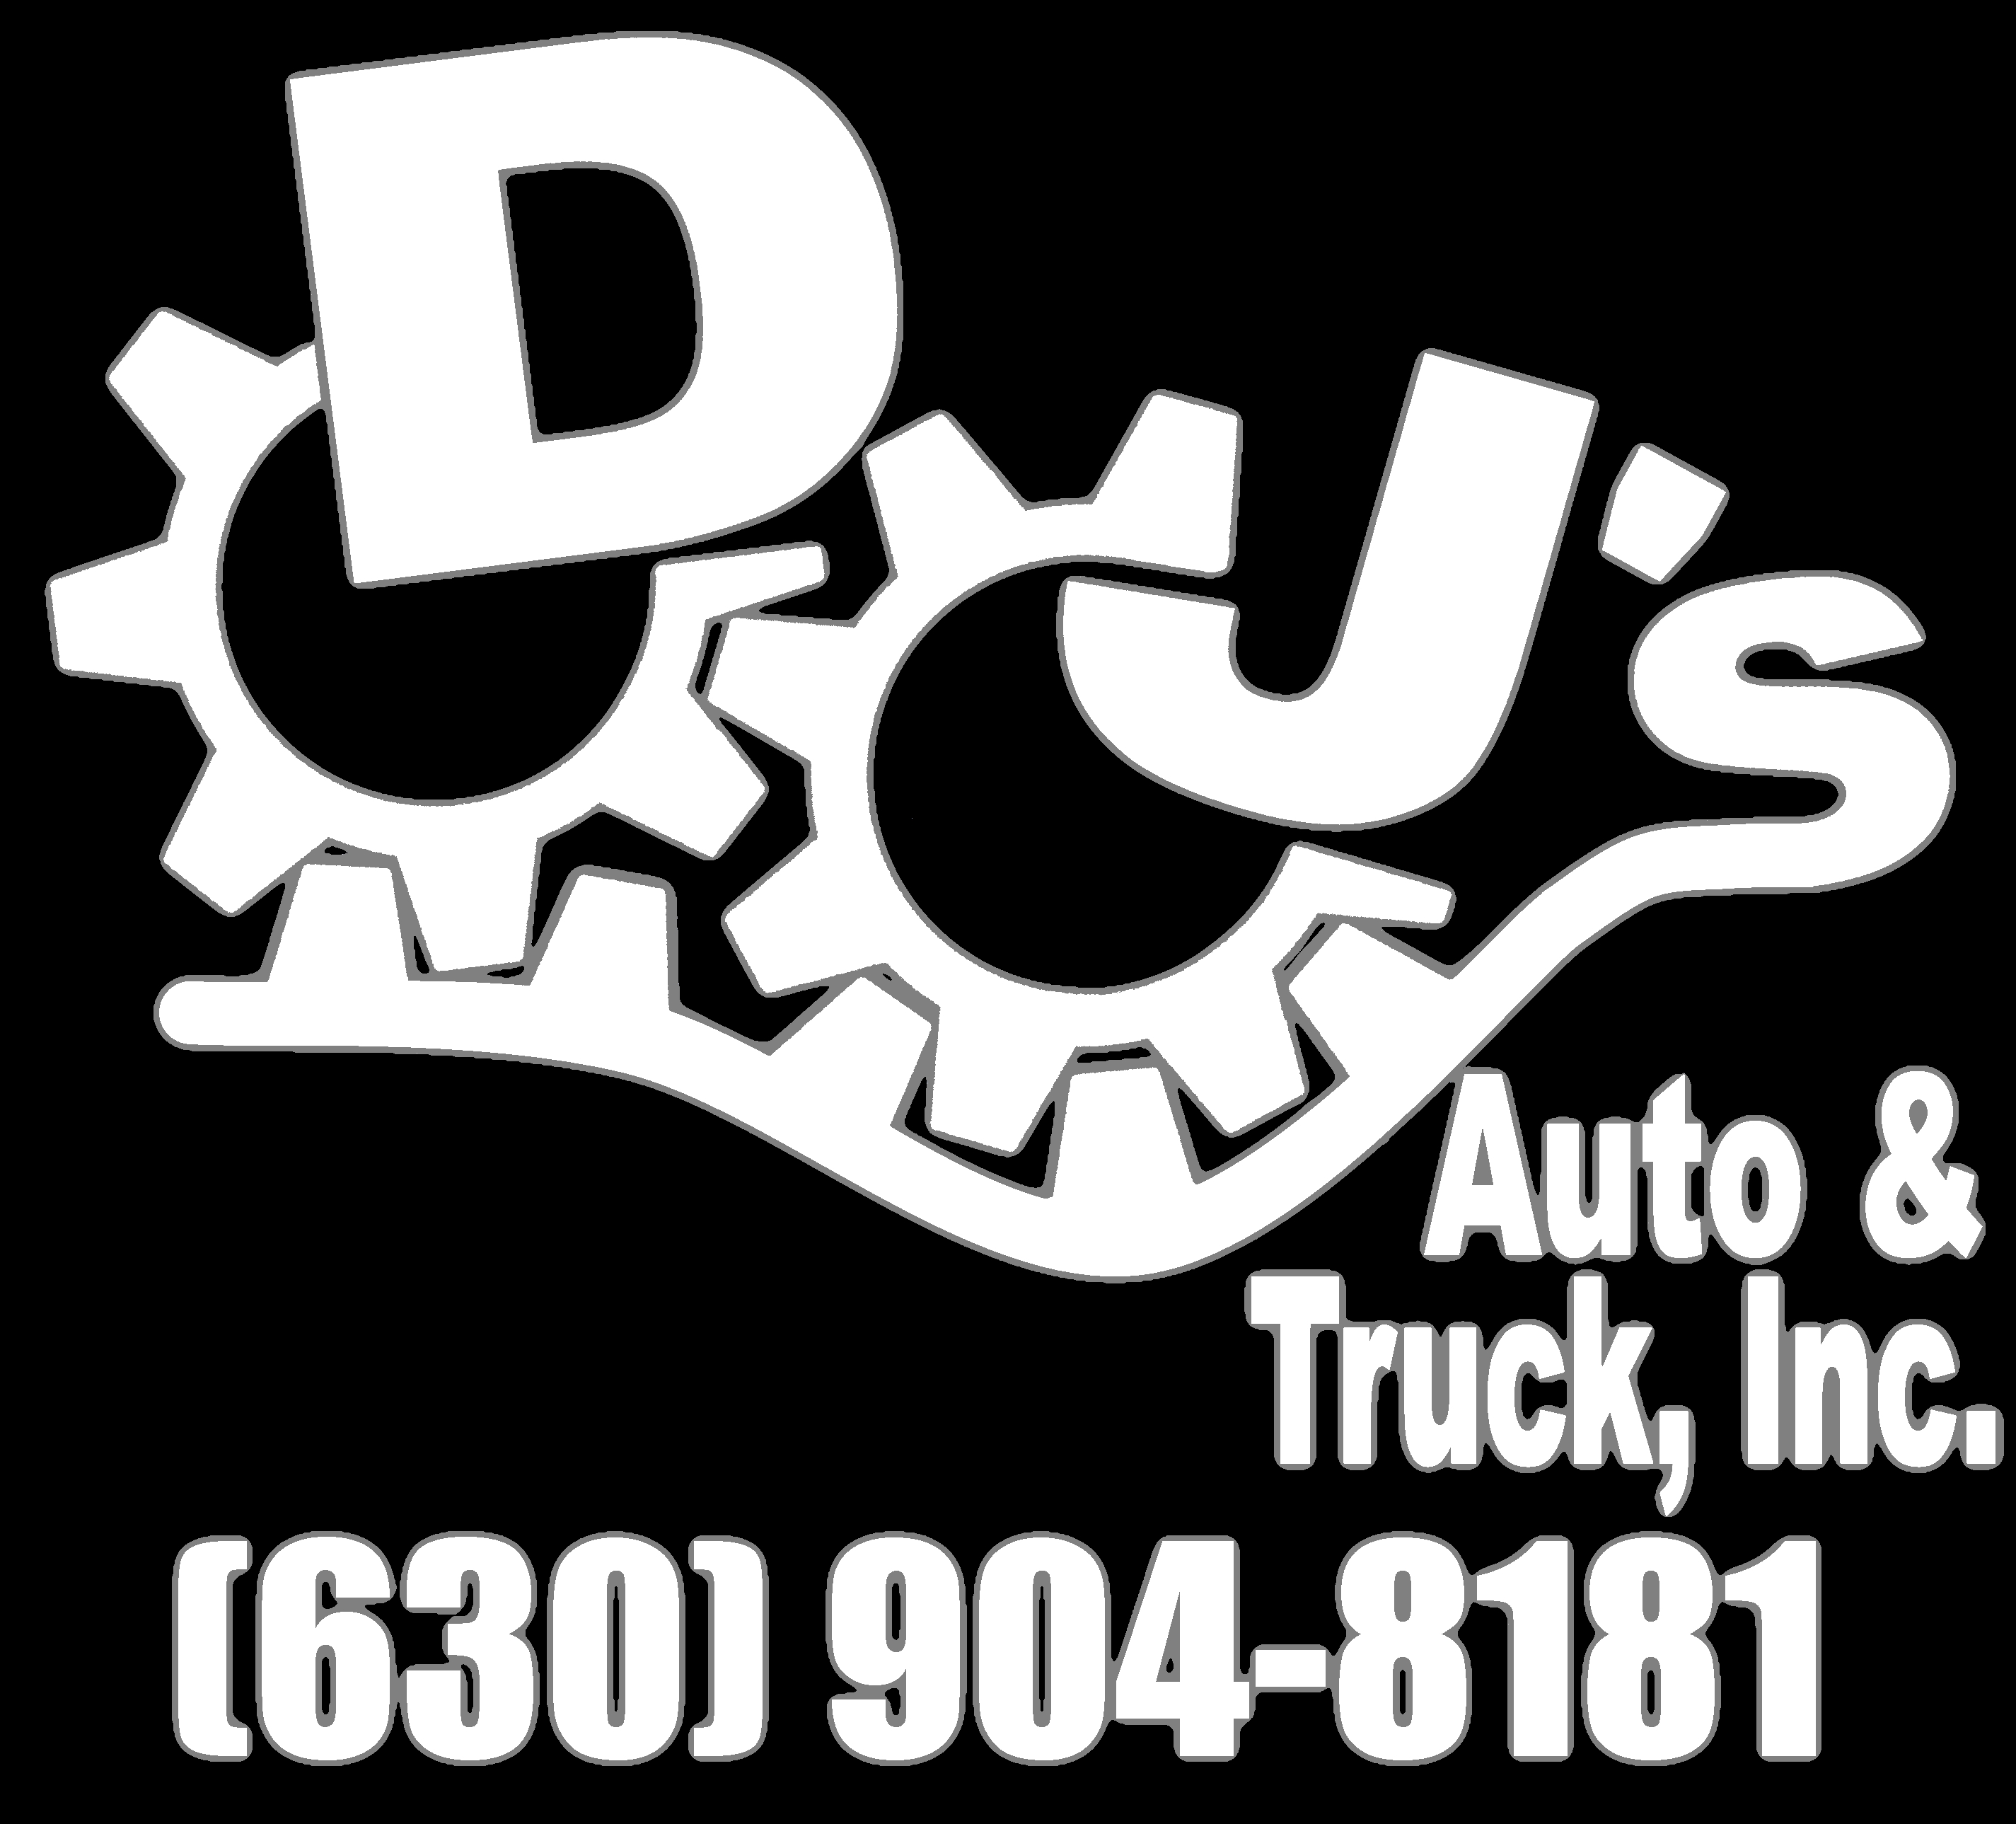 Reliable, honest, auto repair mechanic plainfield, naperville, aurora, oswego IL